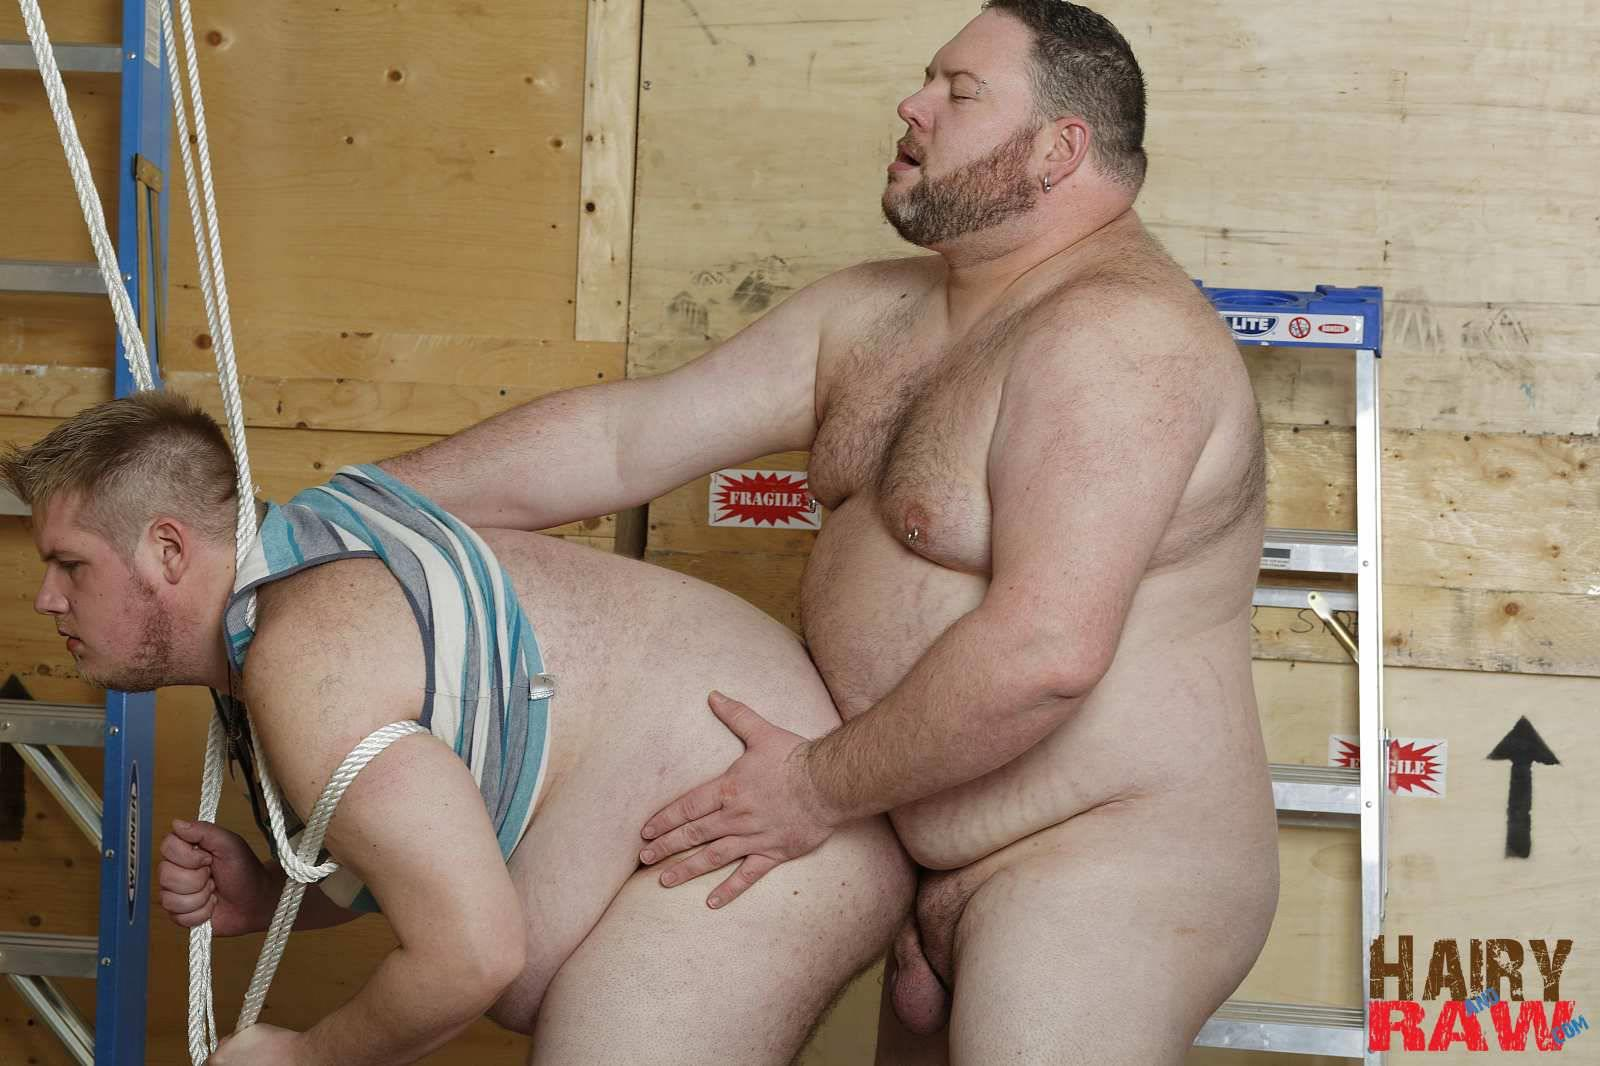 fat chub porn - Super Chubs Fucking Bareback At The Warehouse